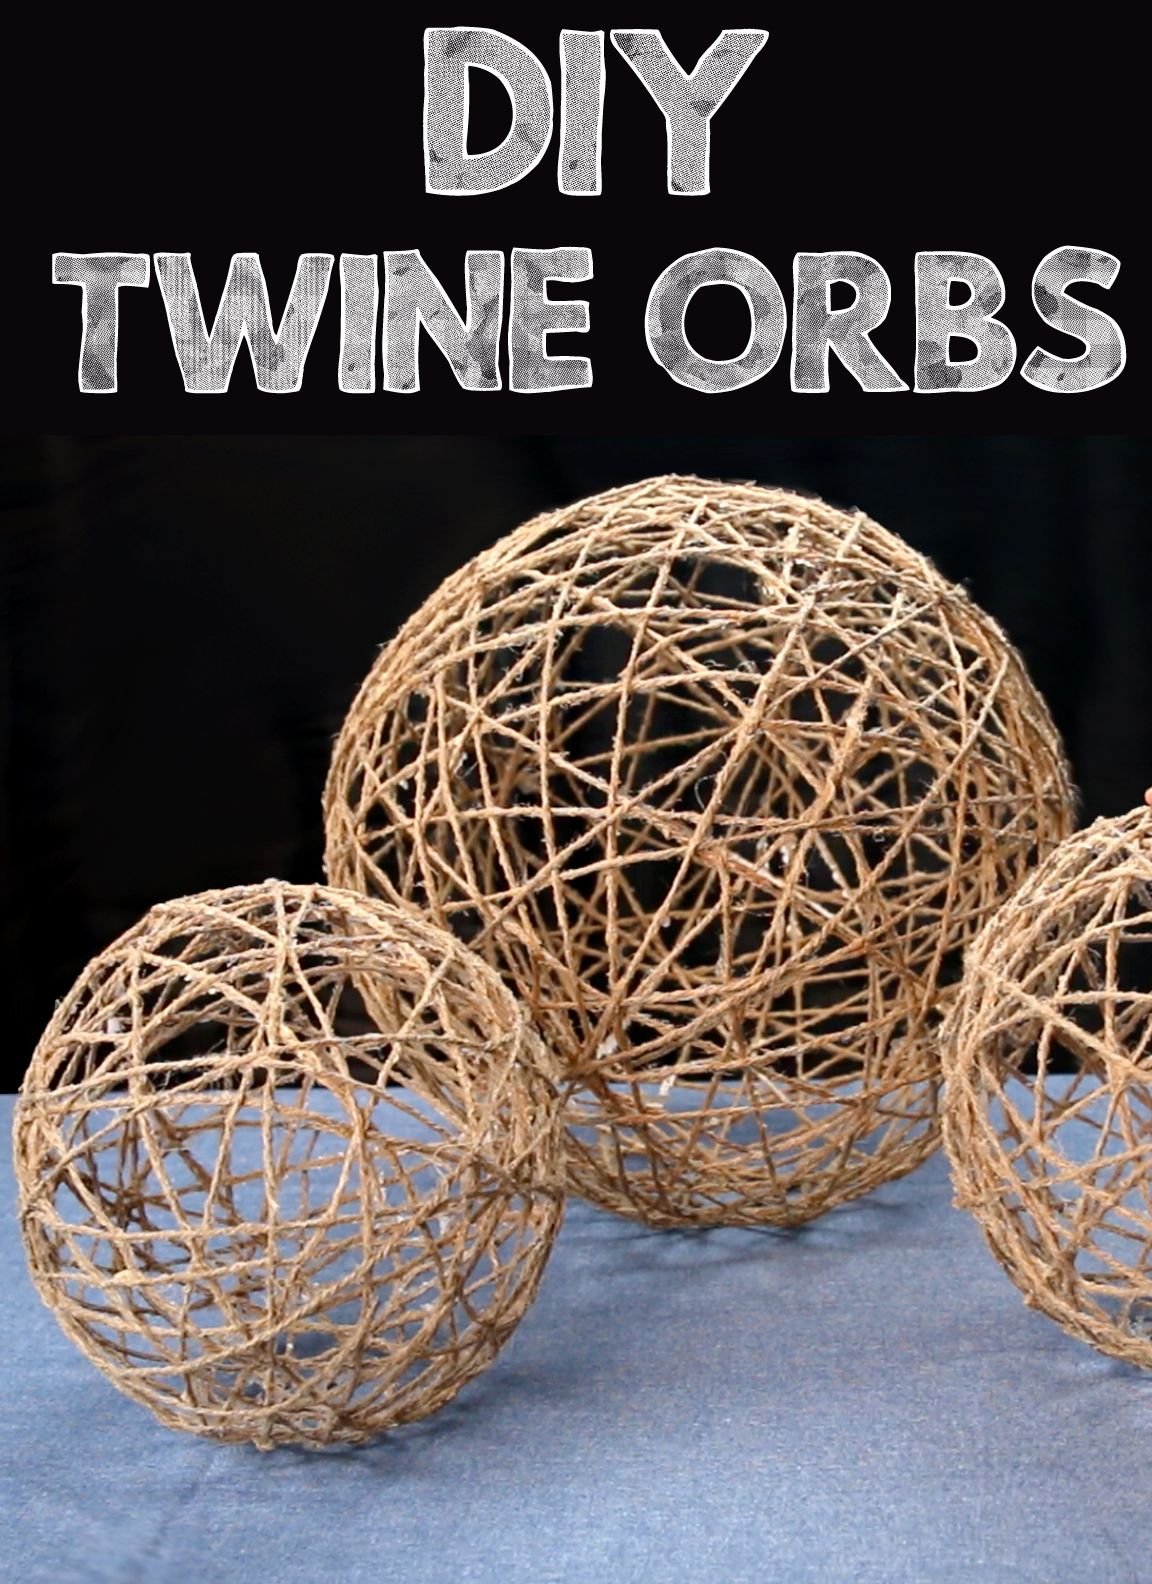 What To Put In A Bowl For Decoration Elegant Diy Twine Orbsyou'll Need Balloon Plastic Bowl Twine